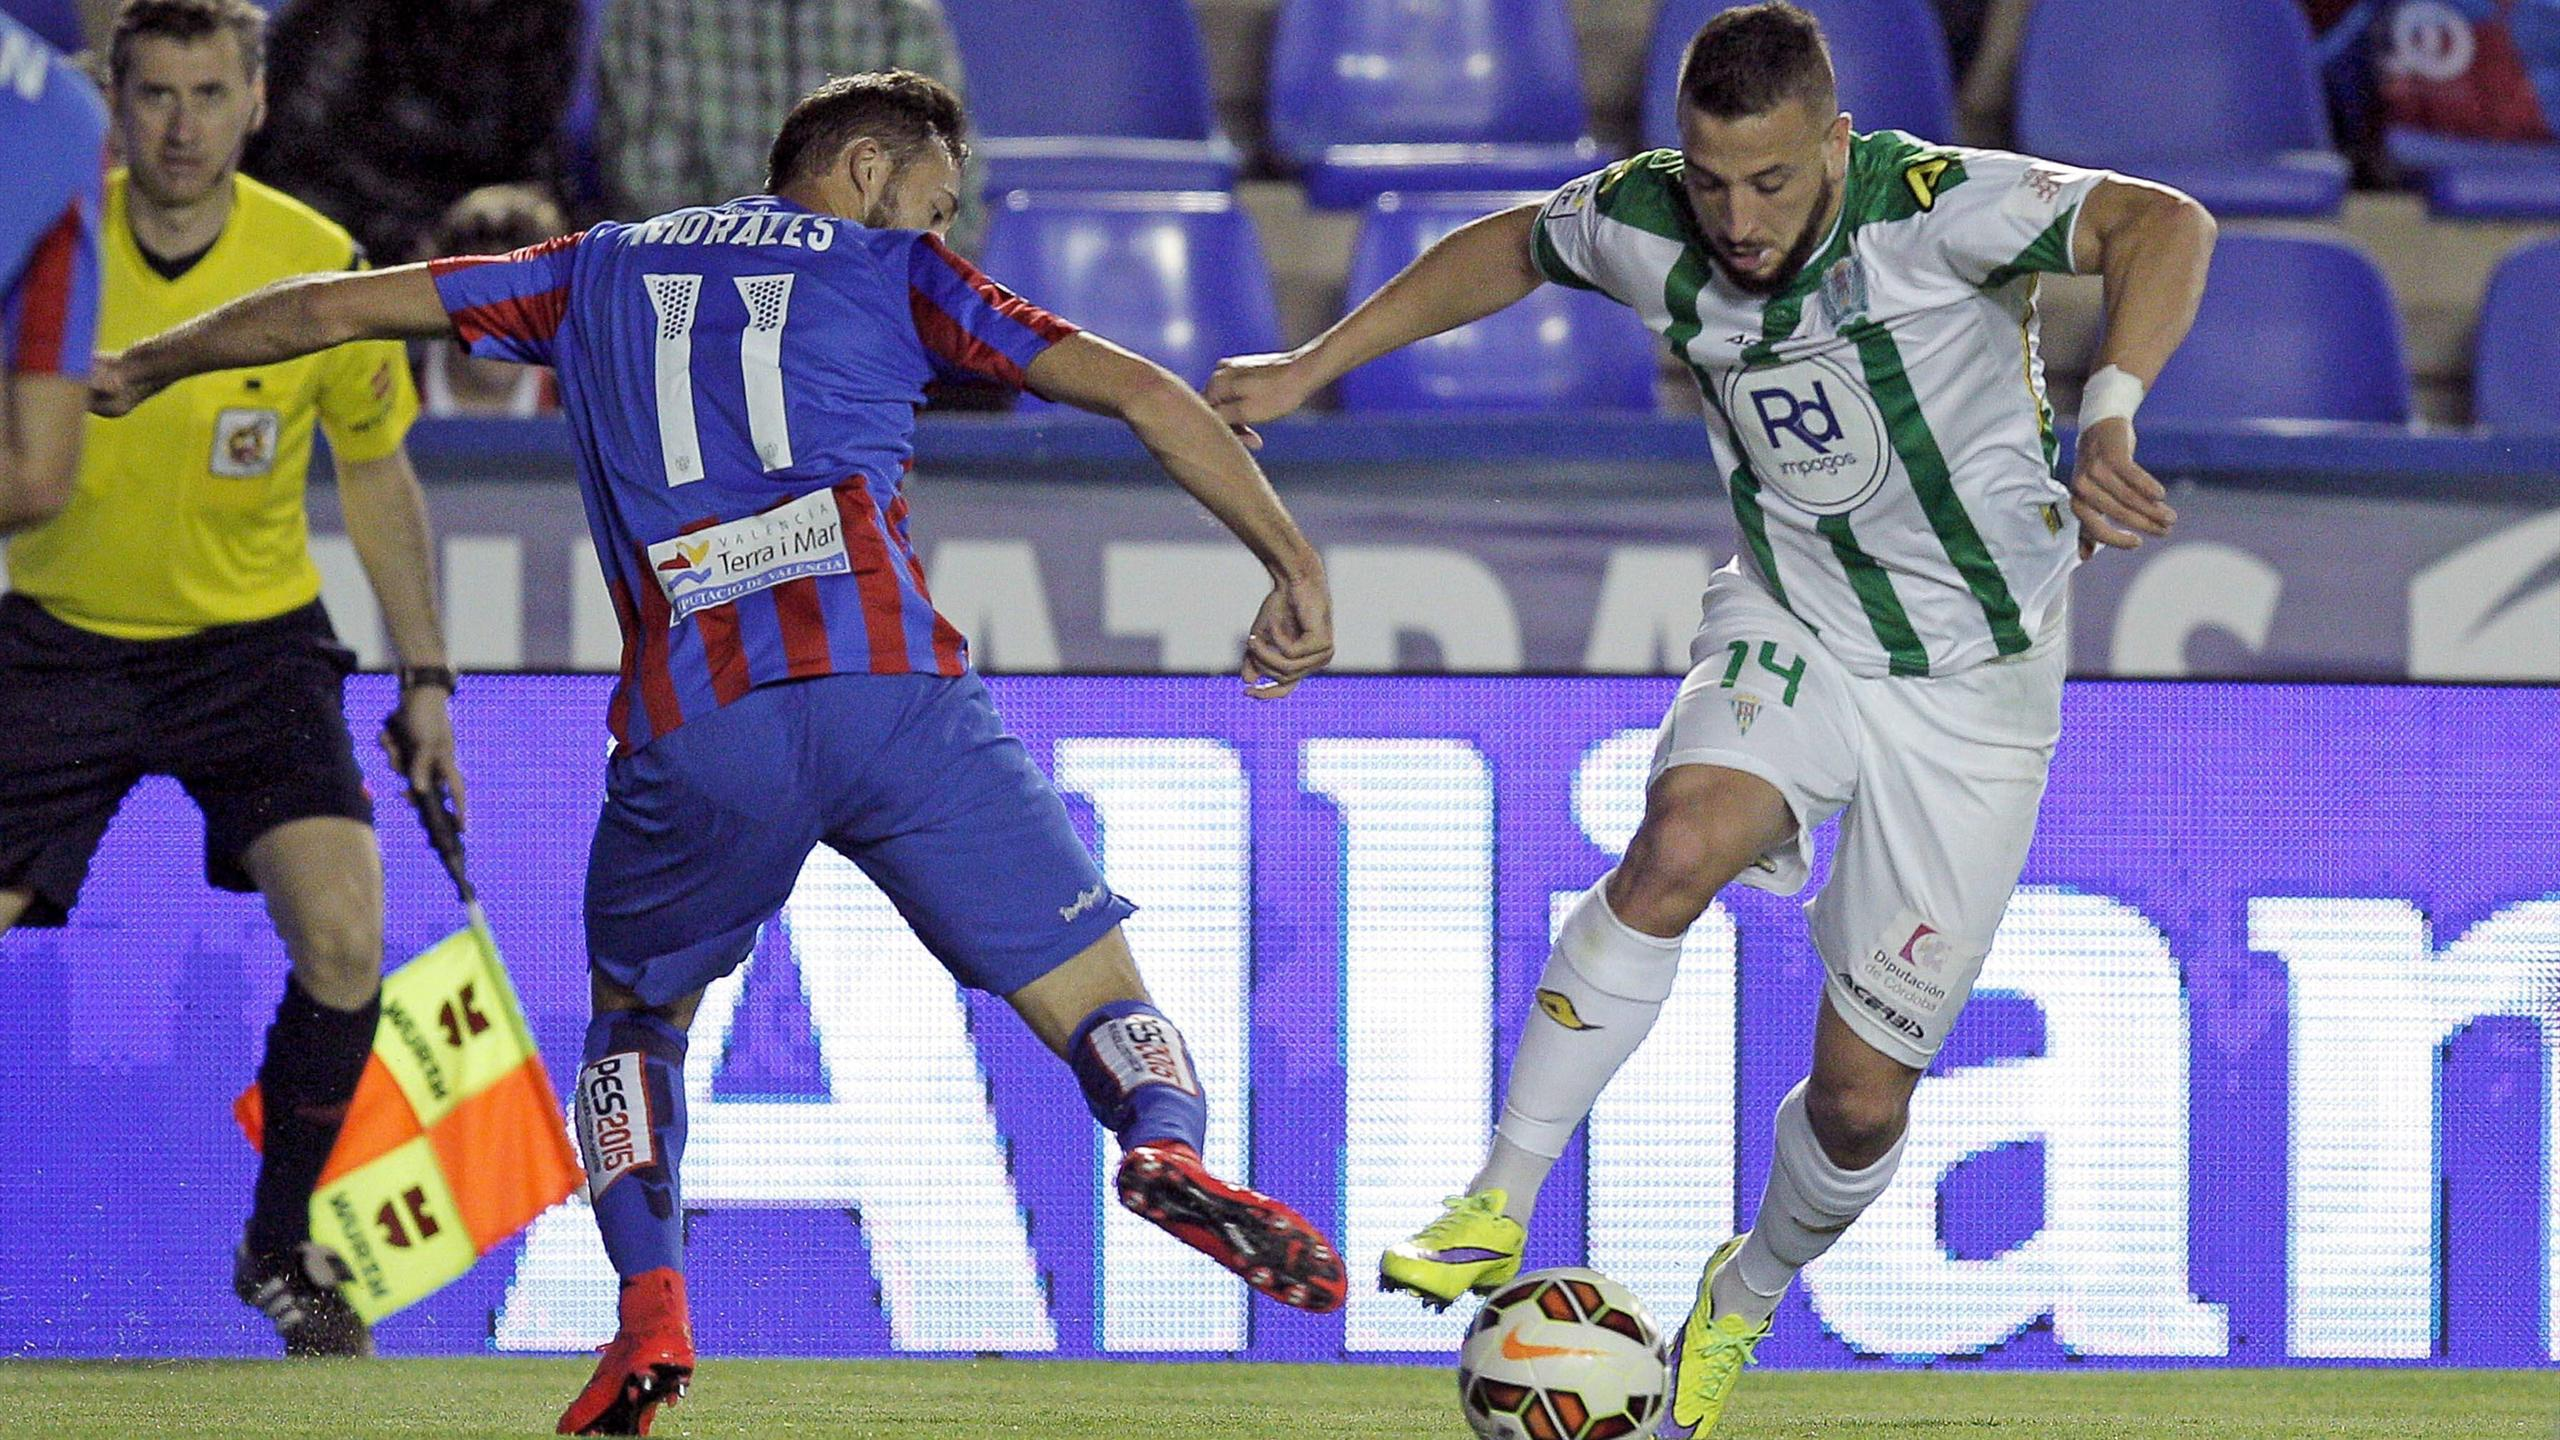 Video: Levante vs Cordoba